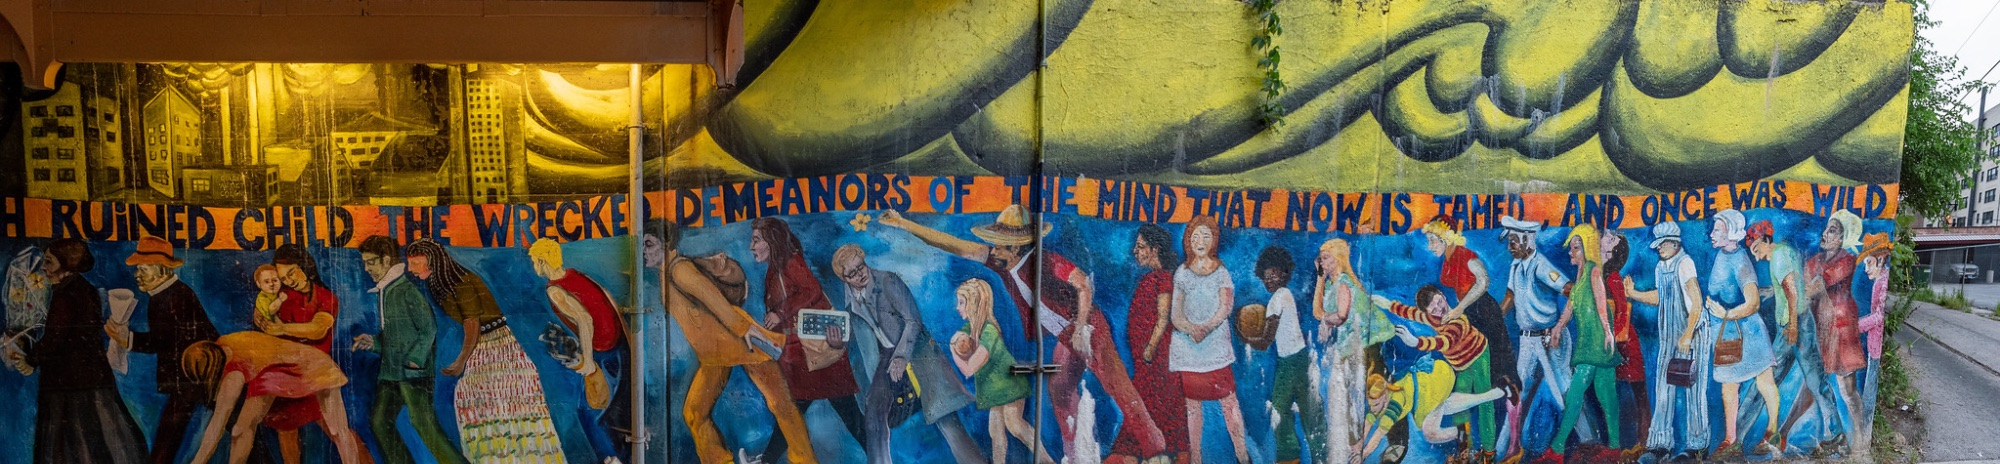 An underpass on Chicago's south side contains a mural showing a wide variety of people, with differences in age, size and ethnicities.